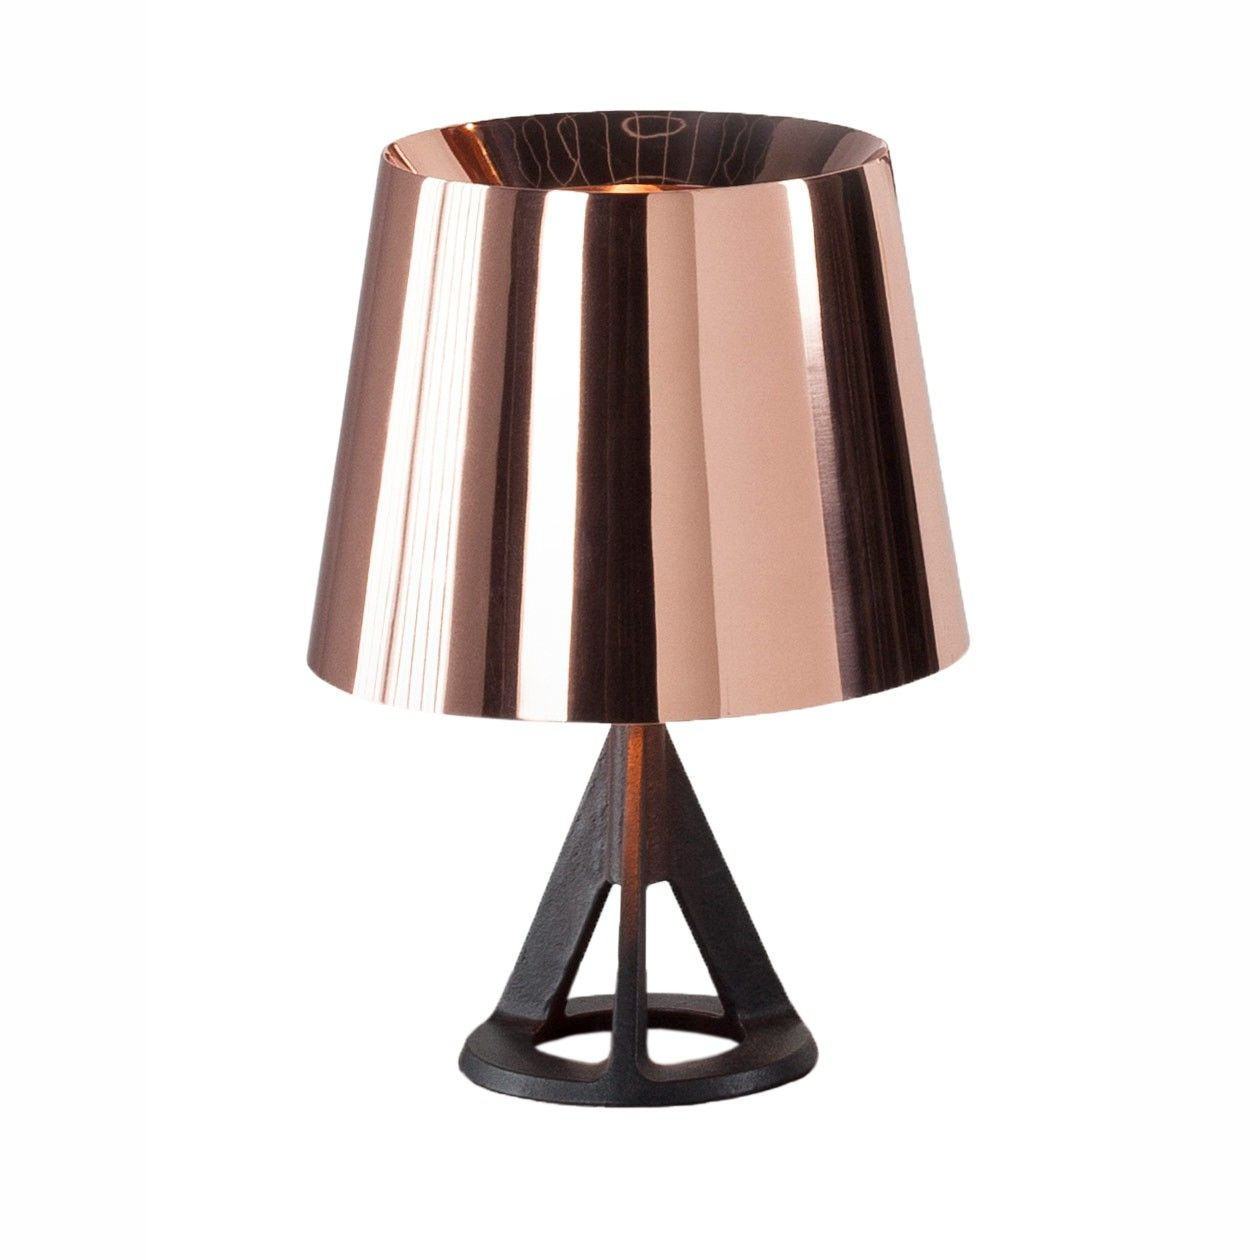 Tom Dixon Base Copper Table Lamp Copper Table Lamp Copper Table Table Lamp